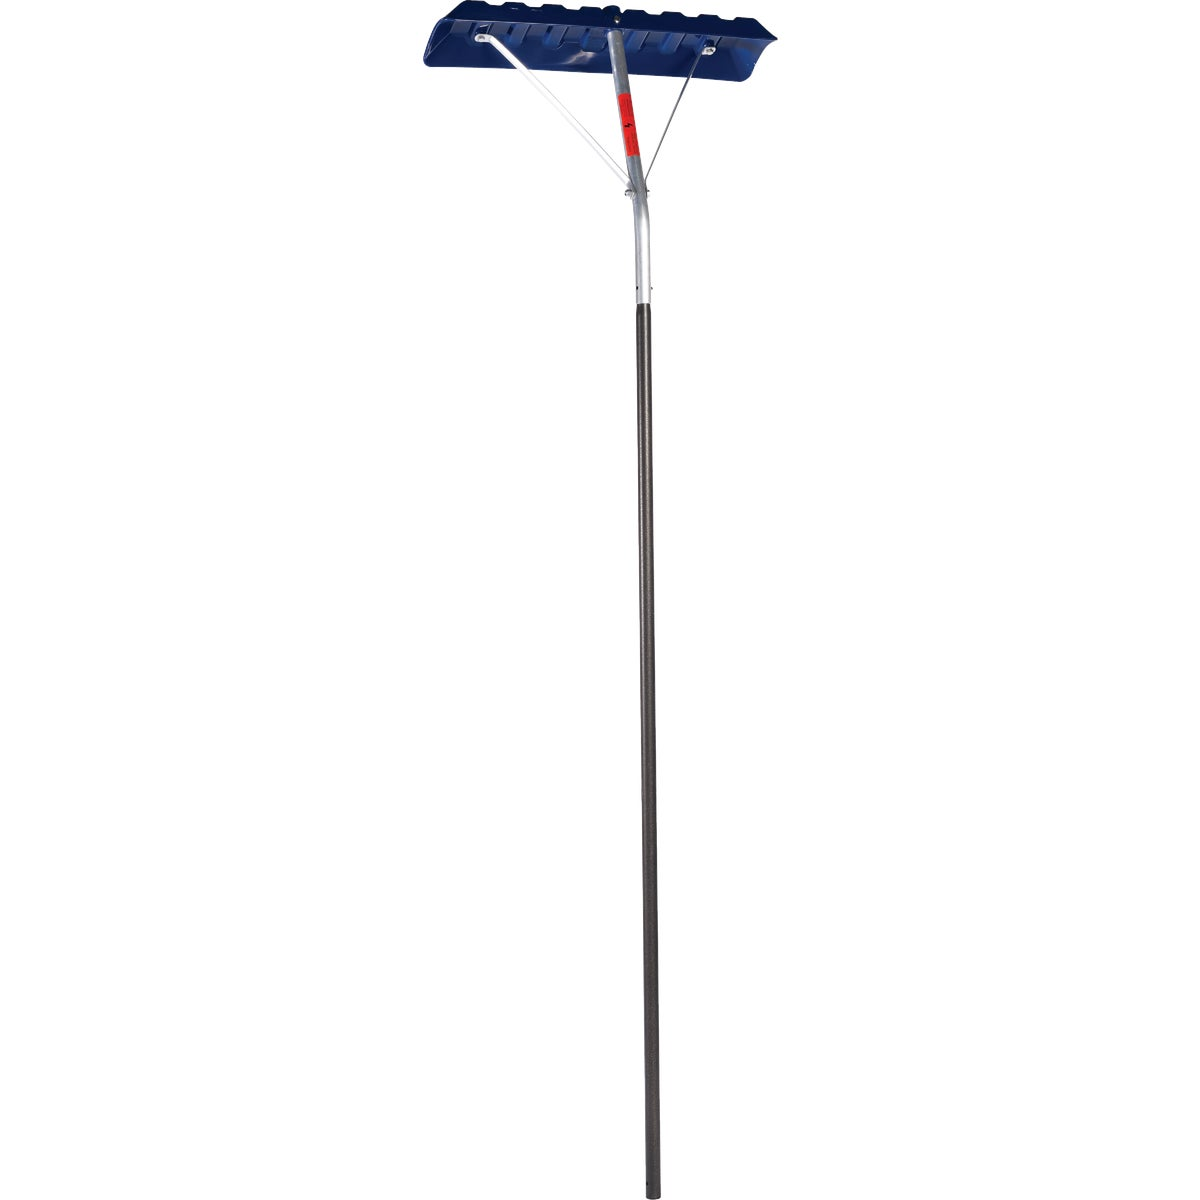 SNOW ROOF RAKE - 1634500 by Ames True Temper